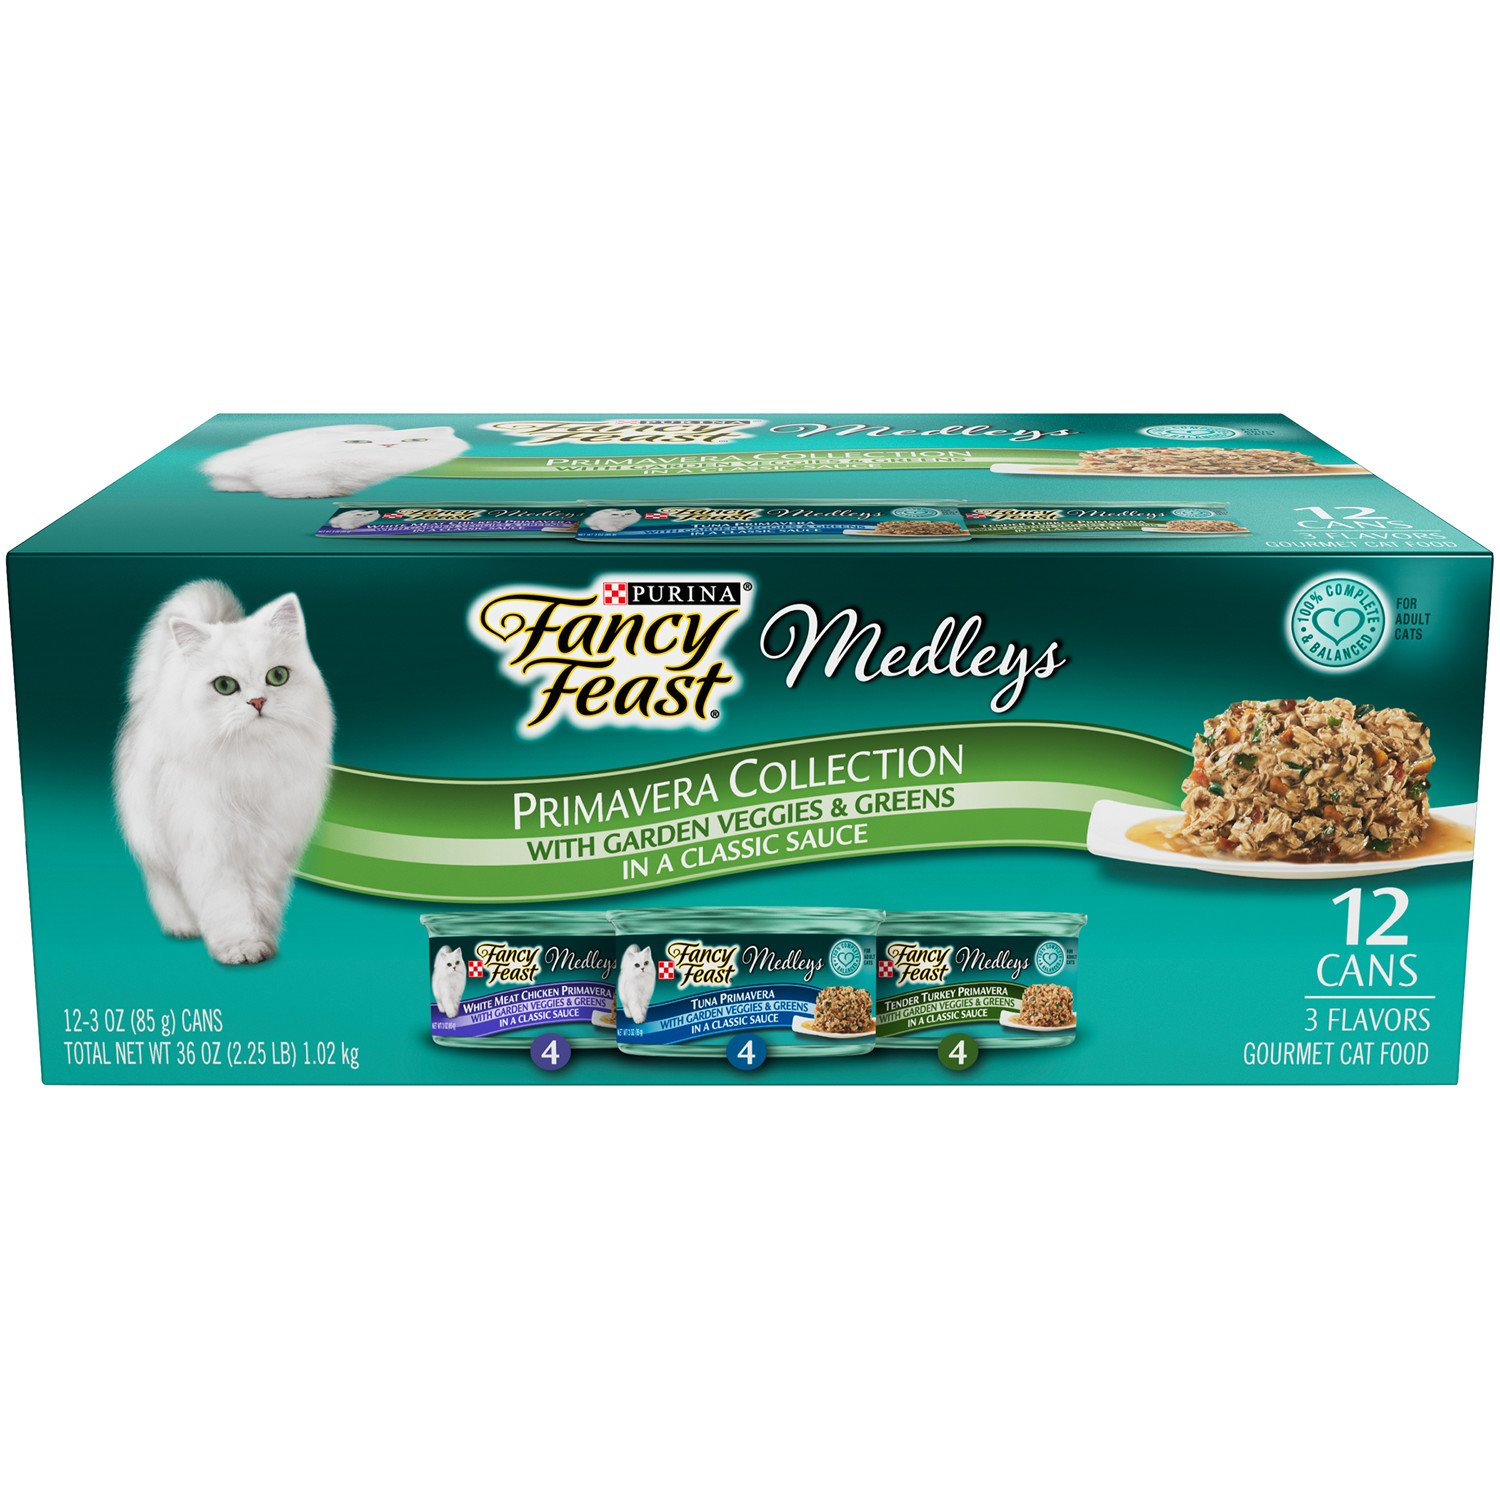 Purina Fancy Feast Medleys Primavera Collection Gourmet Wet Cat Food Variety